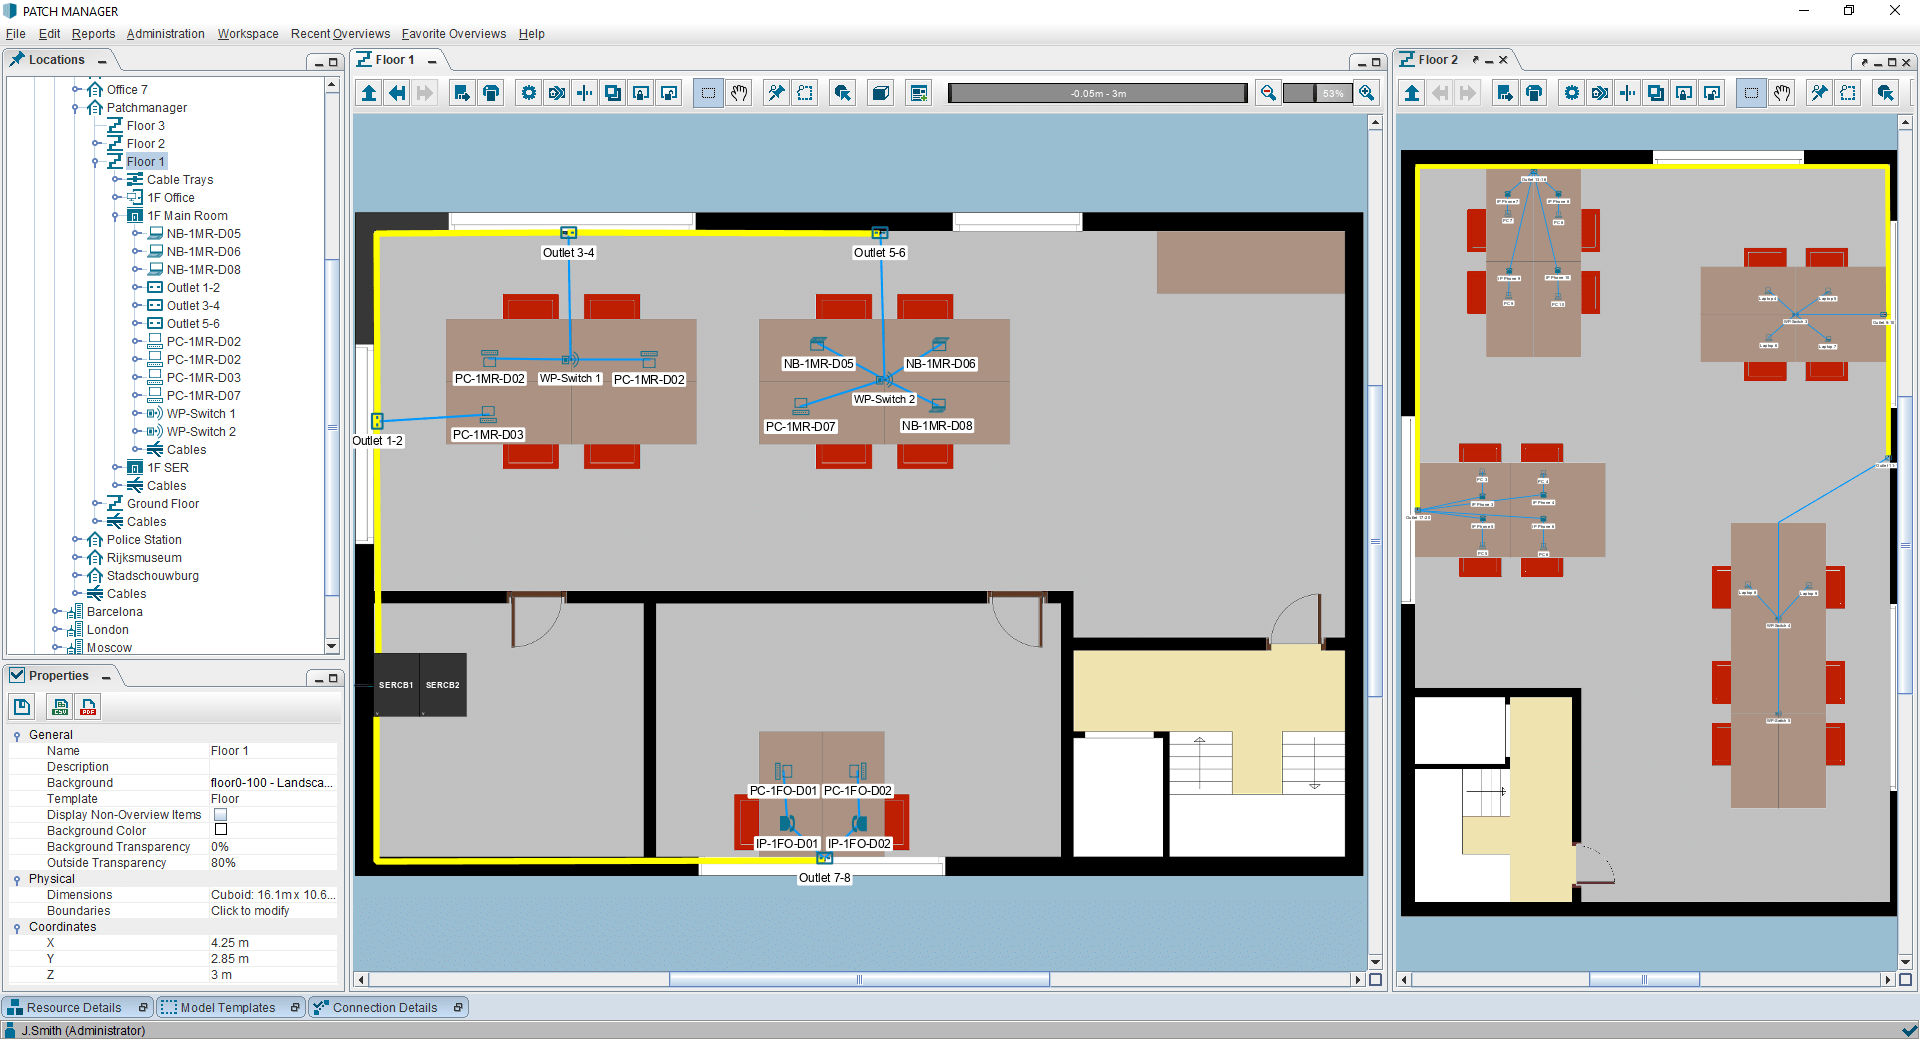 PATCH MANAGER office location overview